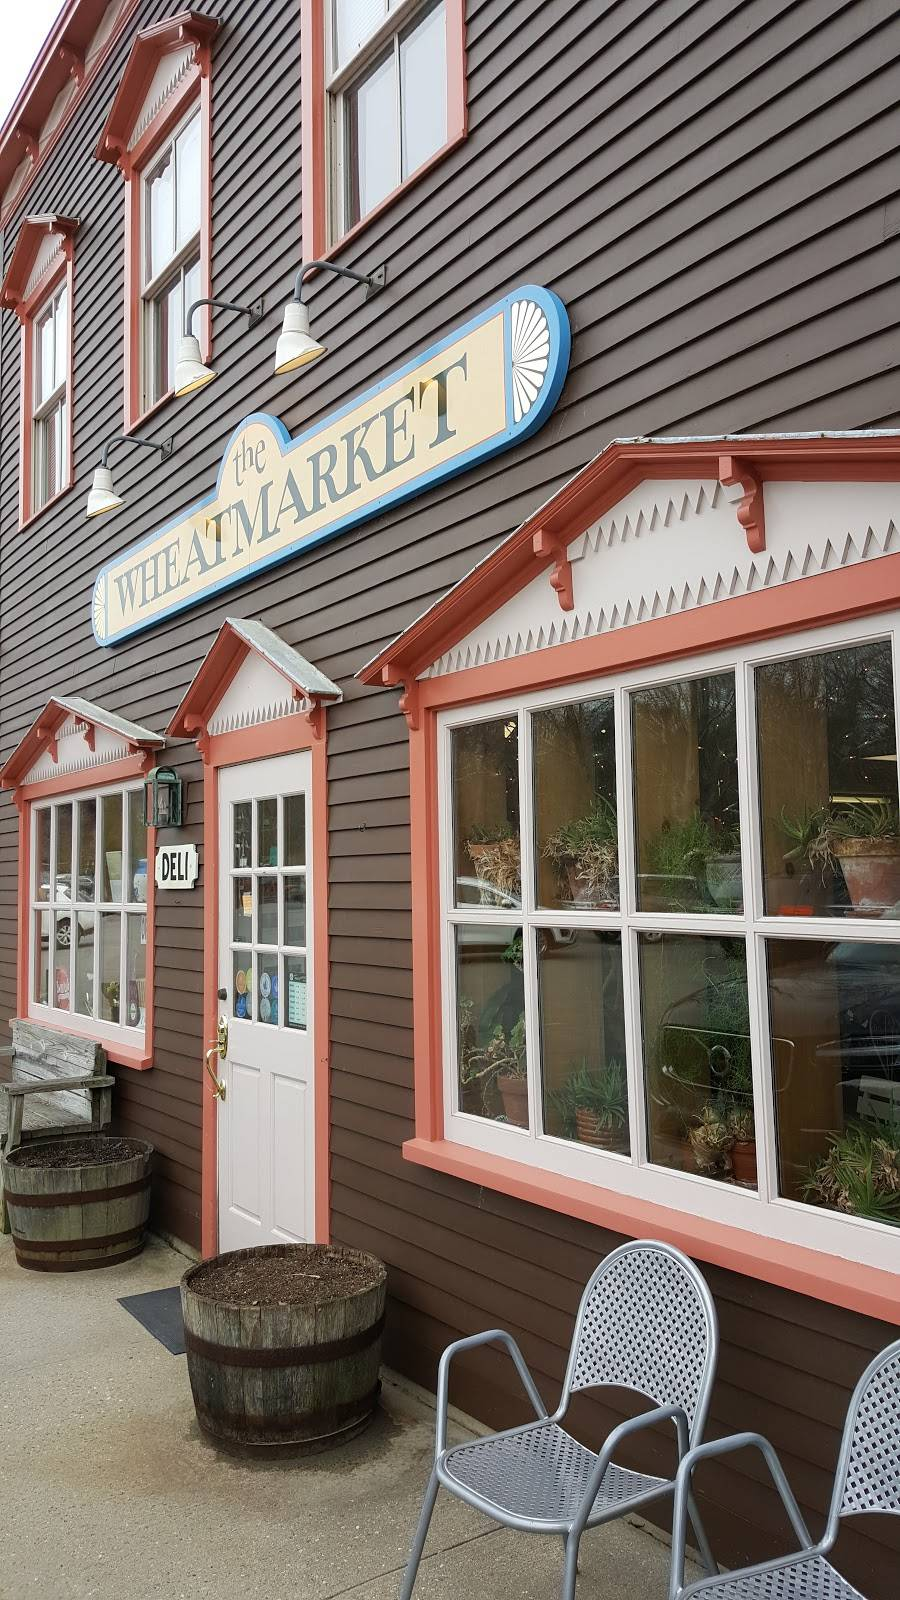 The Wheatmarket | meal takeaway | 4 Water St, Chester, CT 06412, USA | 8605269347 OR +1 860-526-9347